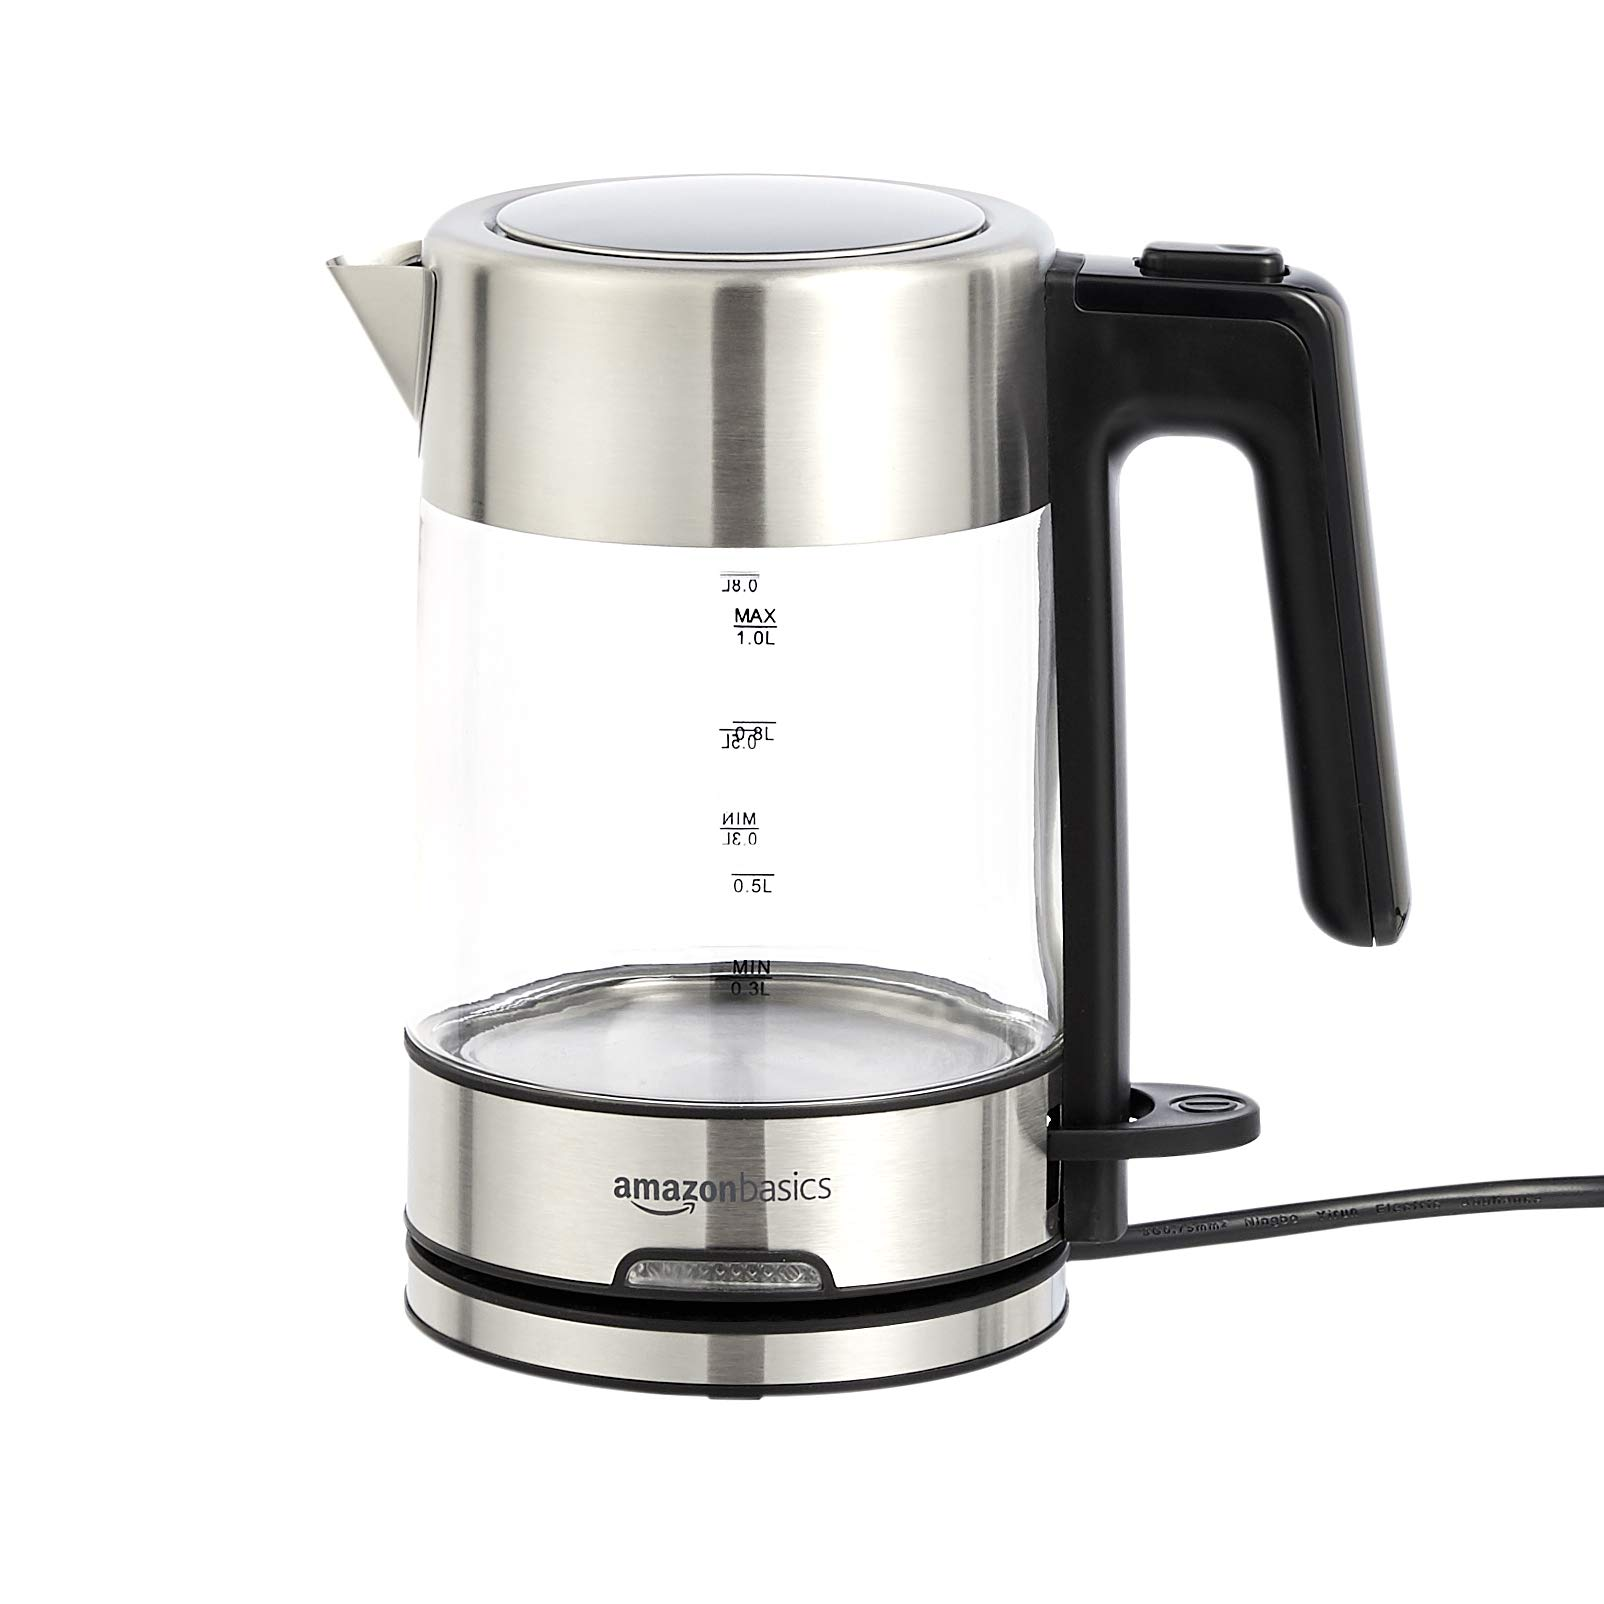 Amazon Basics Electric Glass and Steel Kettle - 1.0 Liter